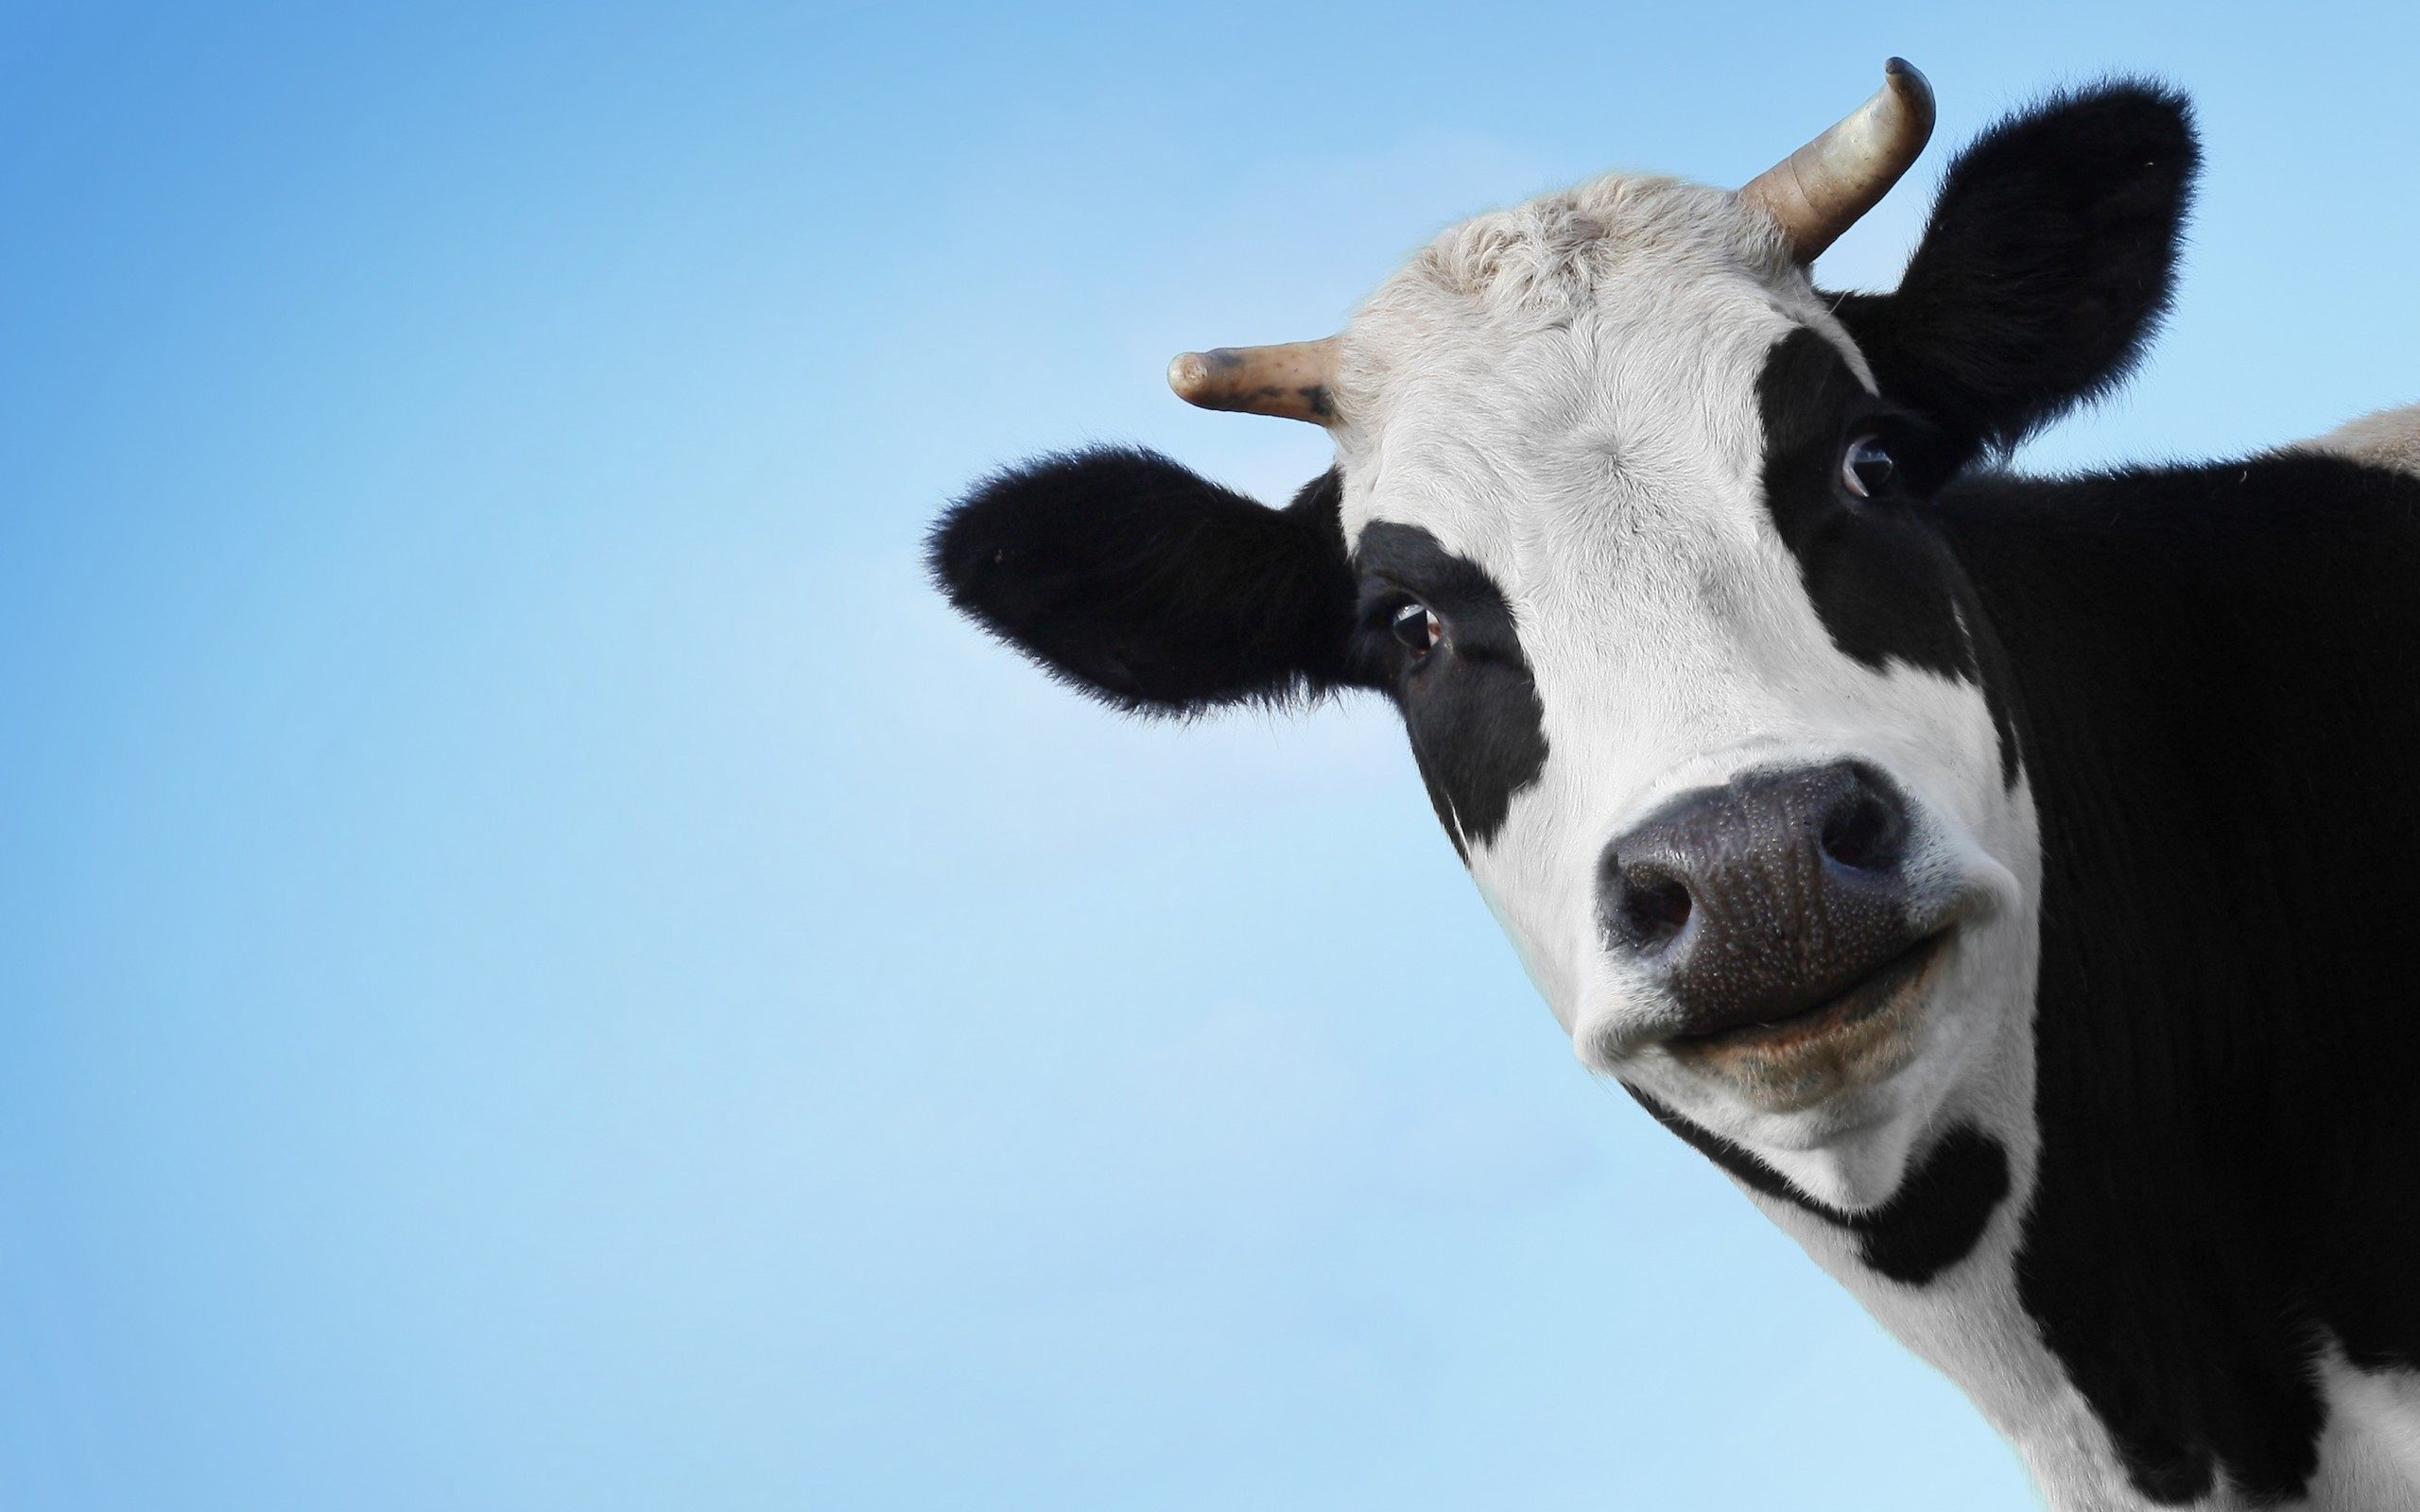 Funny Cow Face Wallpaper Background 51979 2560x1600 px